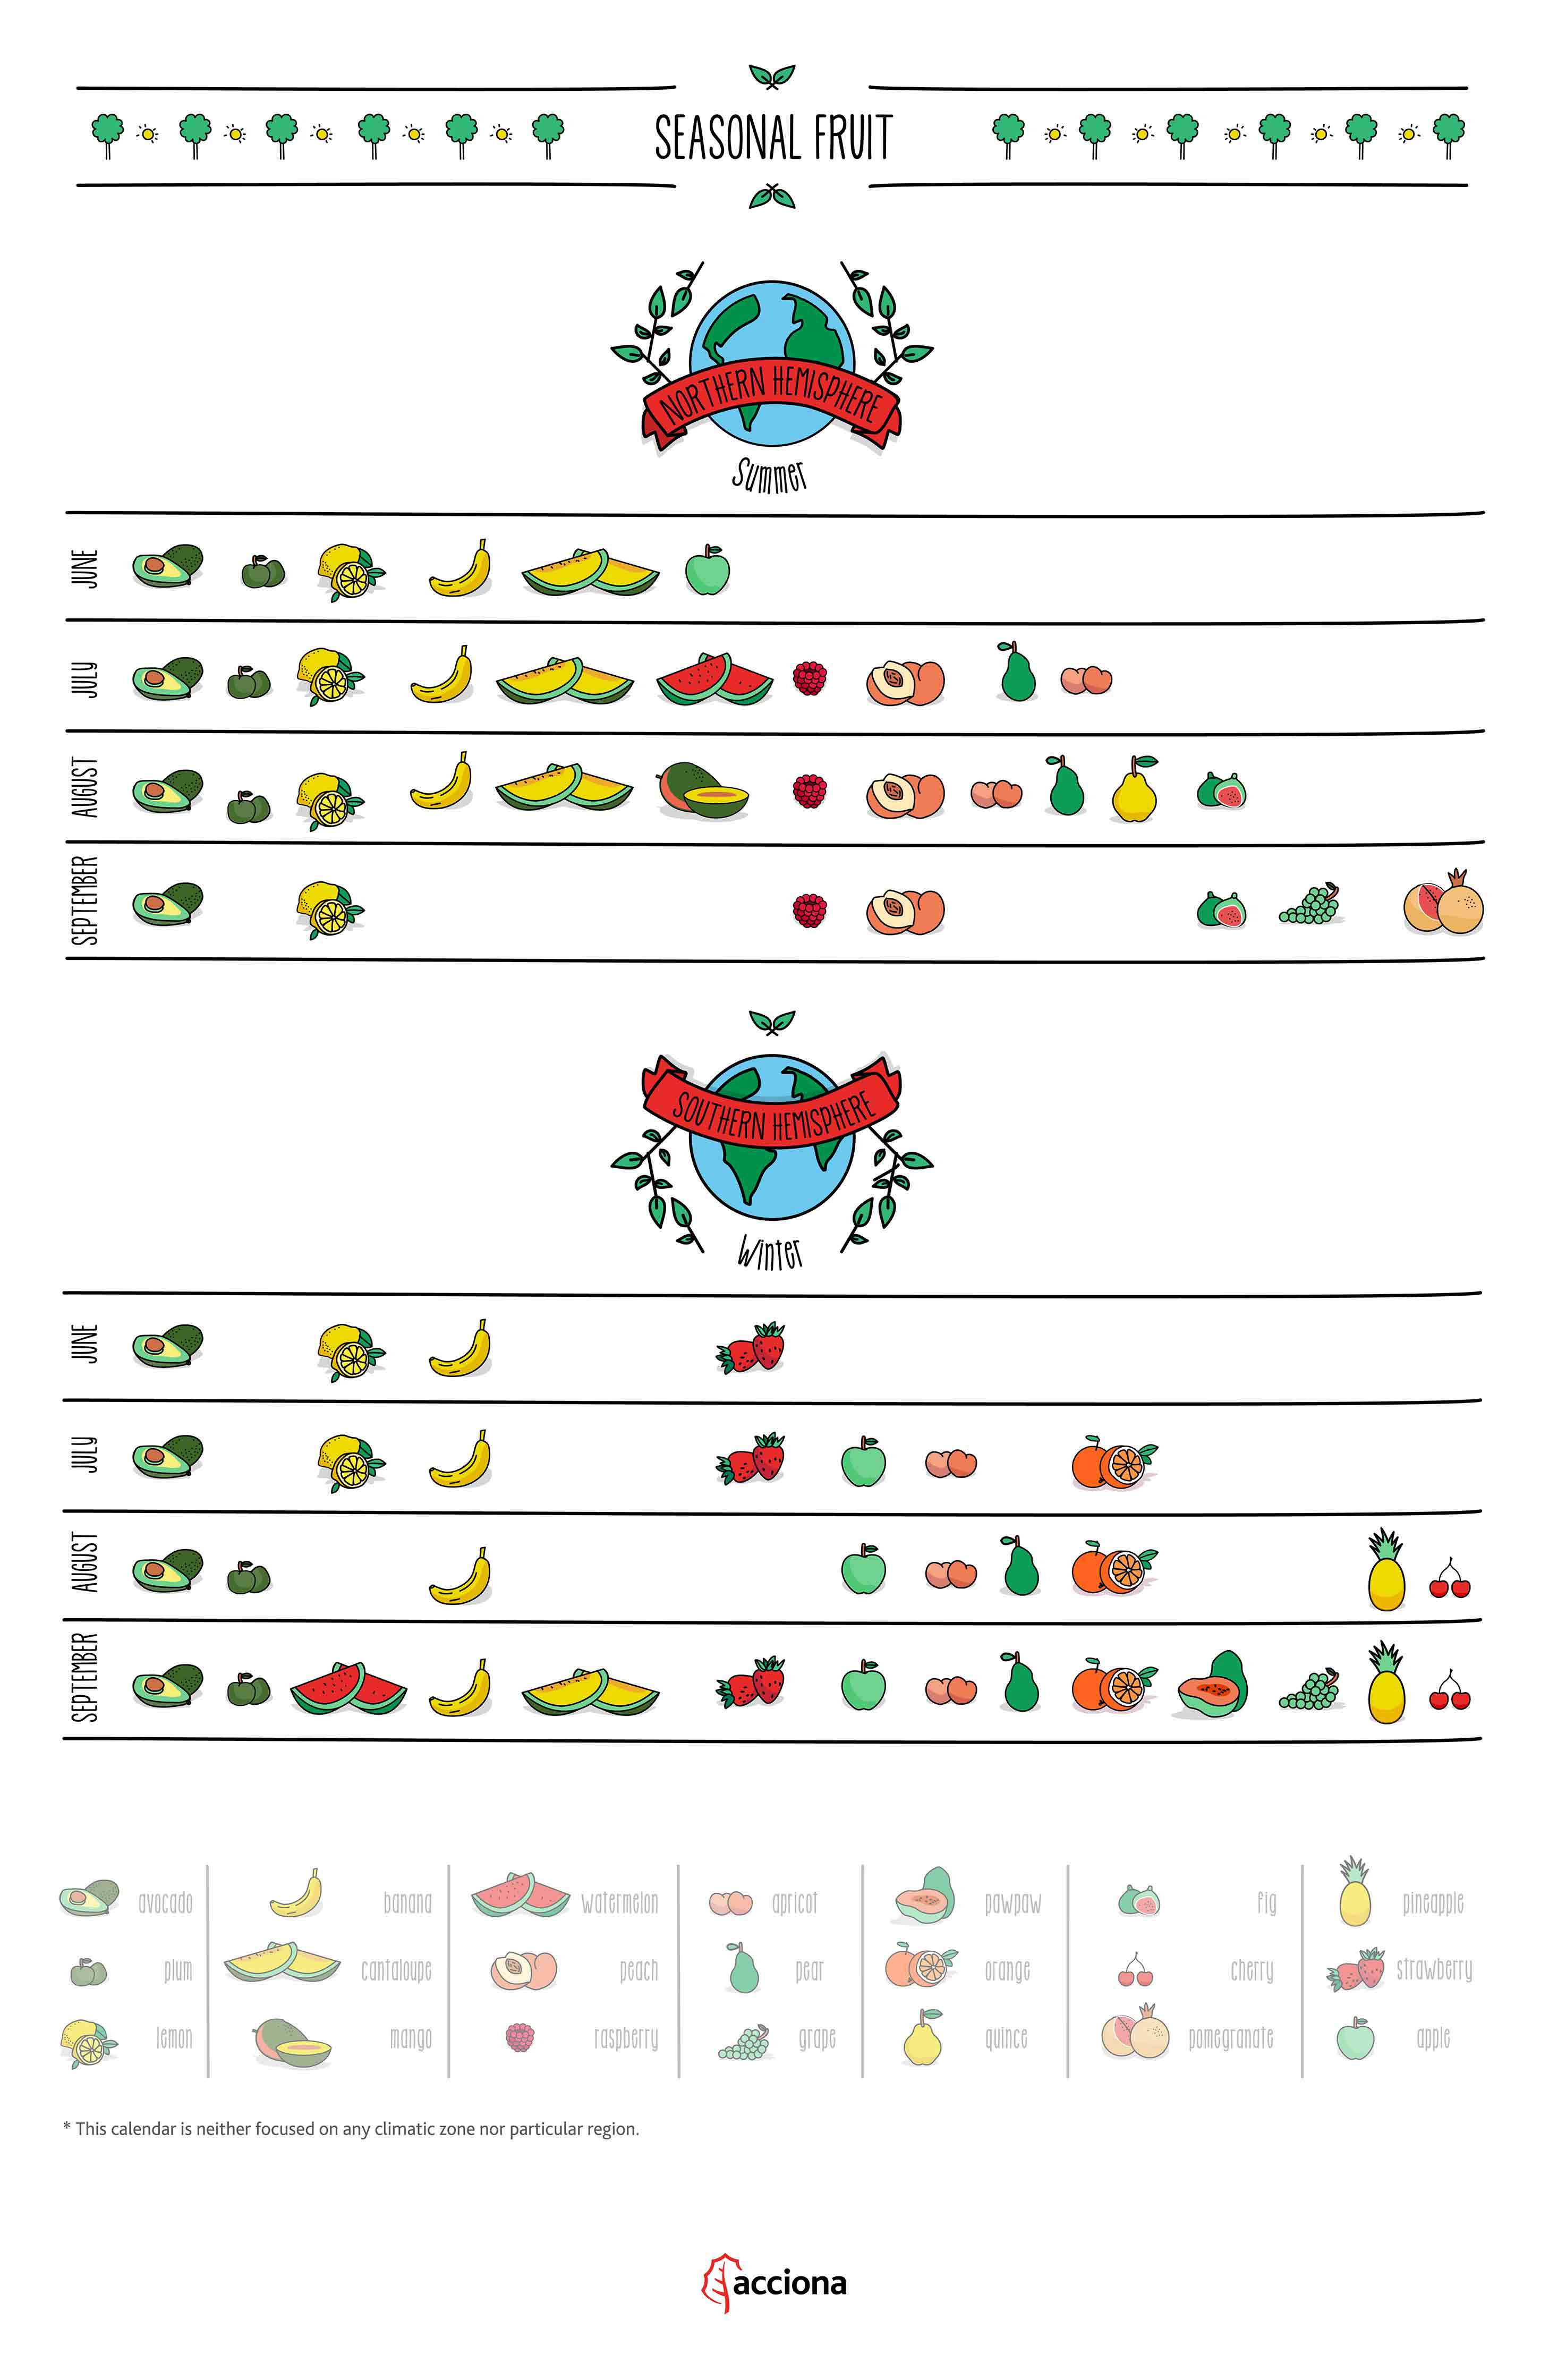 Seasonal fruits calendar